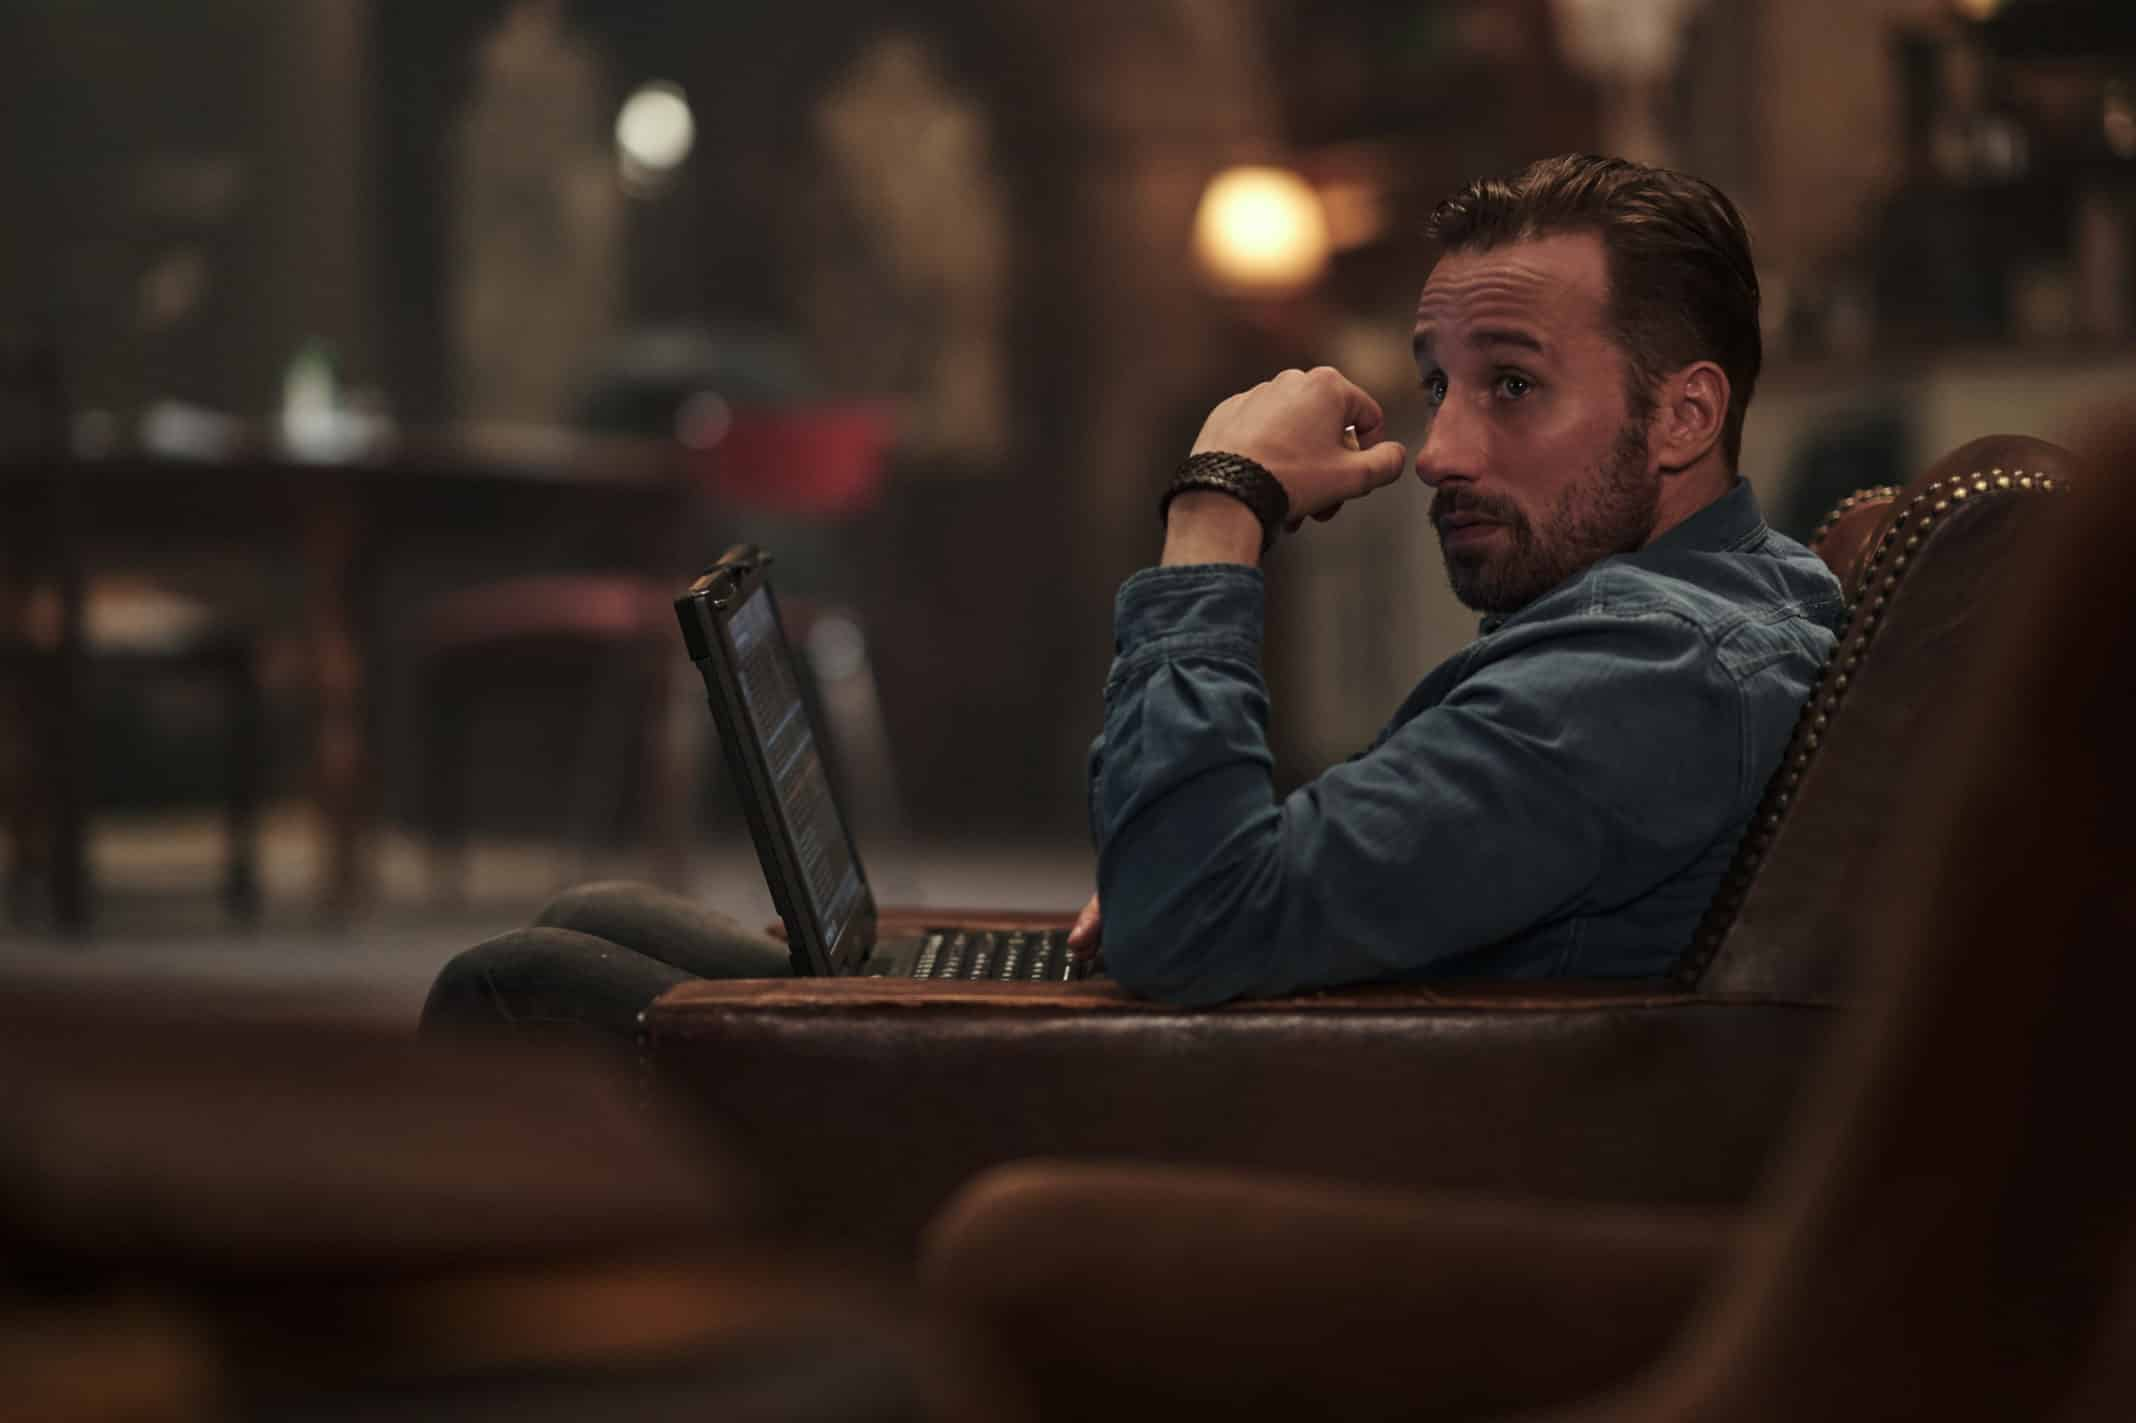 MATTHIAS SCHOENAERTS as BOOKER in THE OLD GUARD